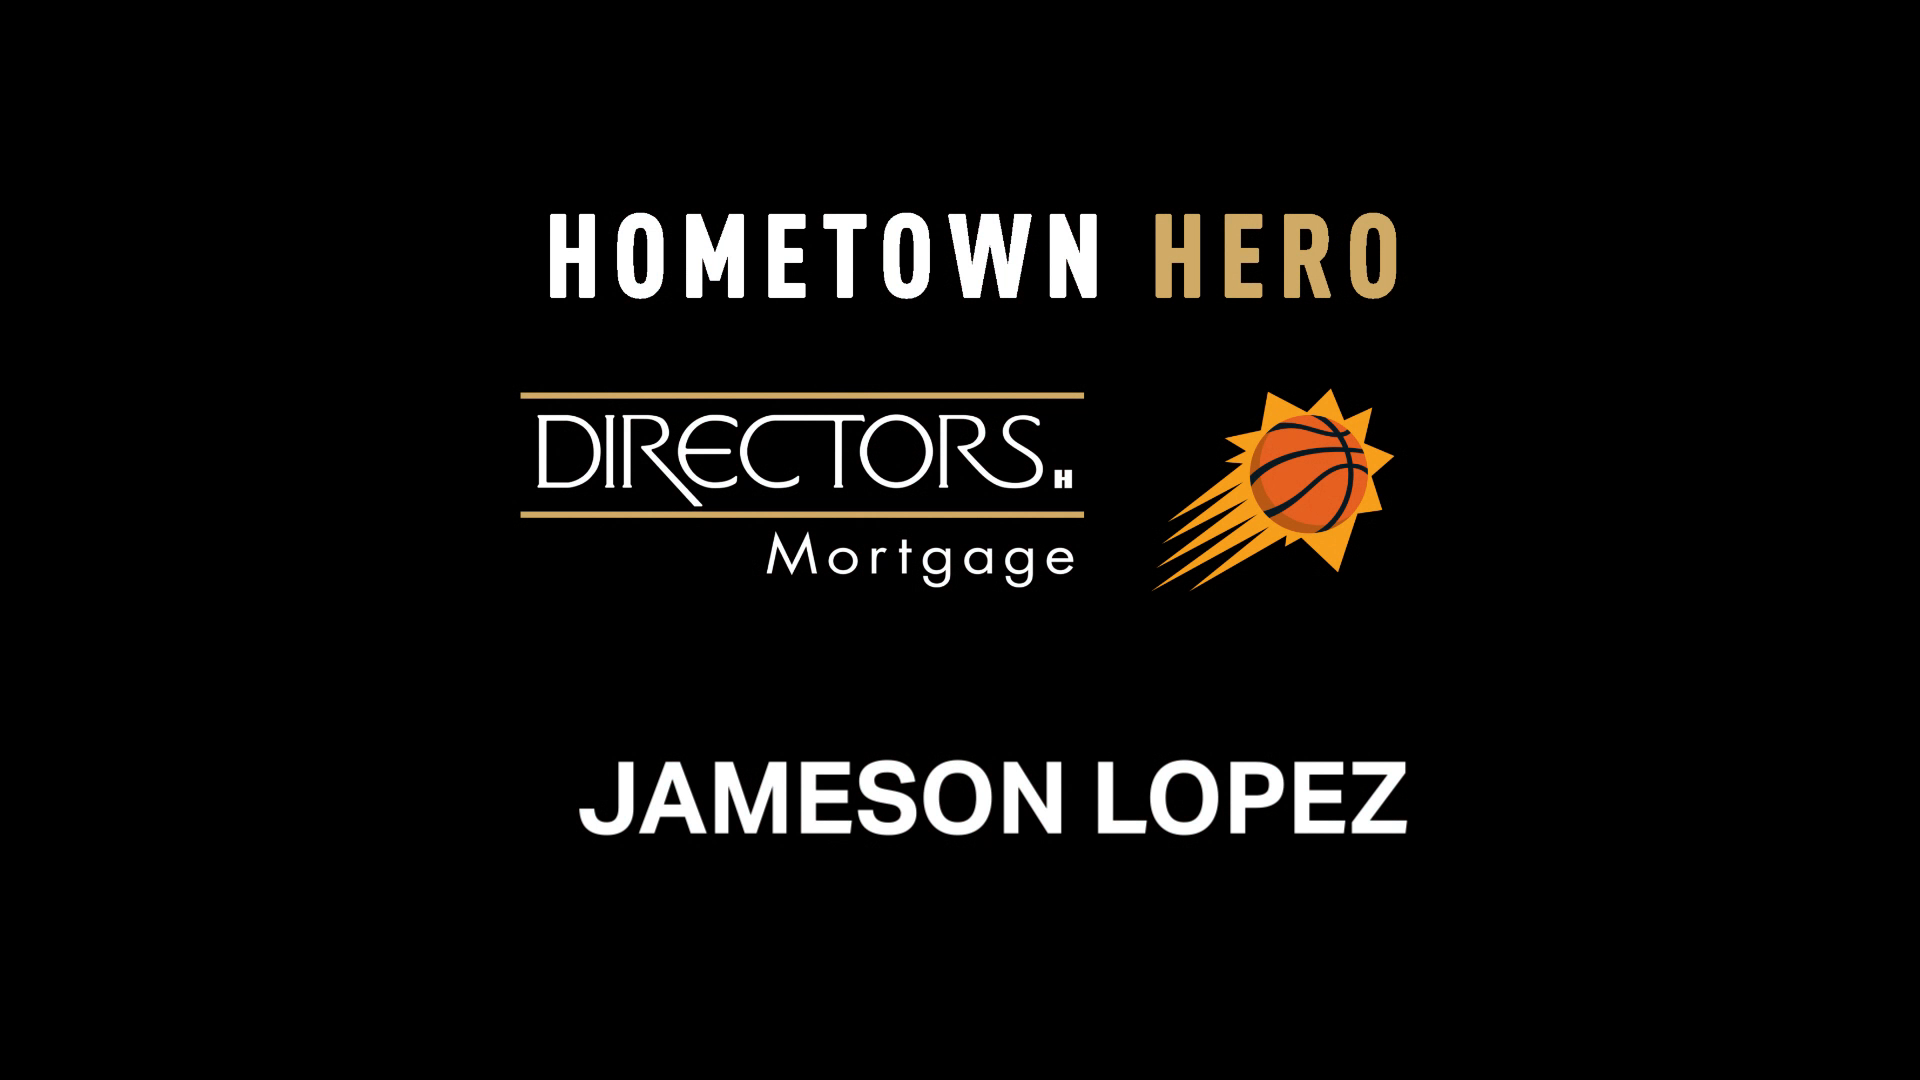 Jameson Lopez | Directors Mortgage Hometown Hero Honoree 2020-21